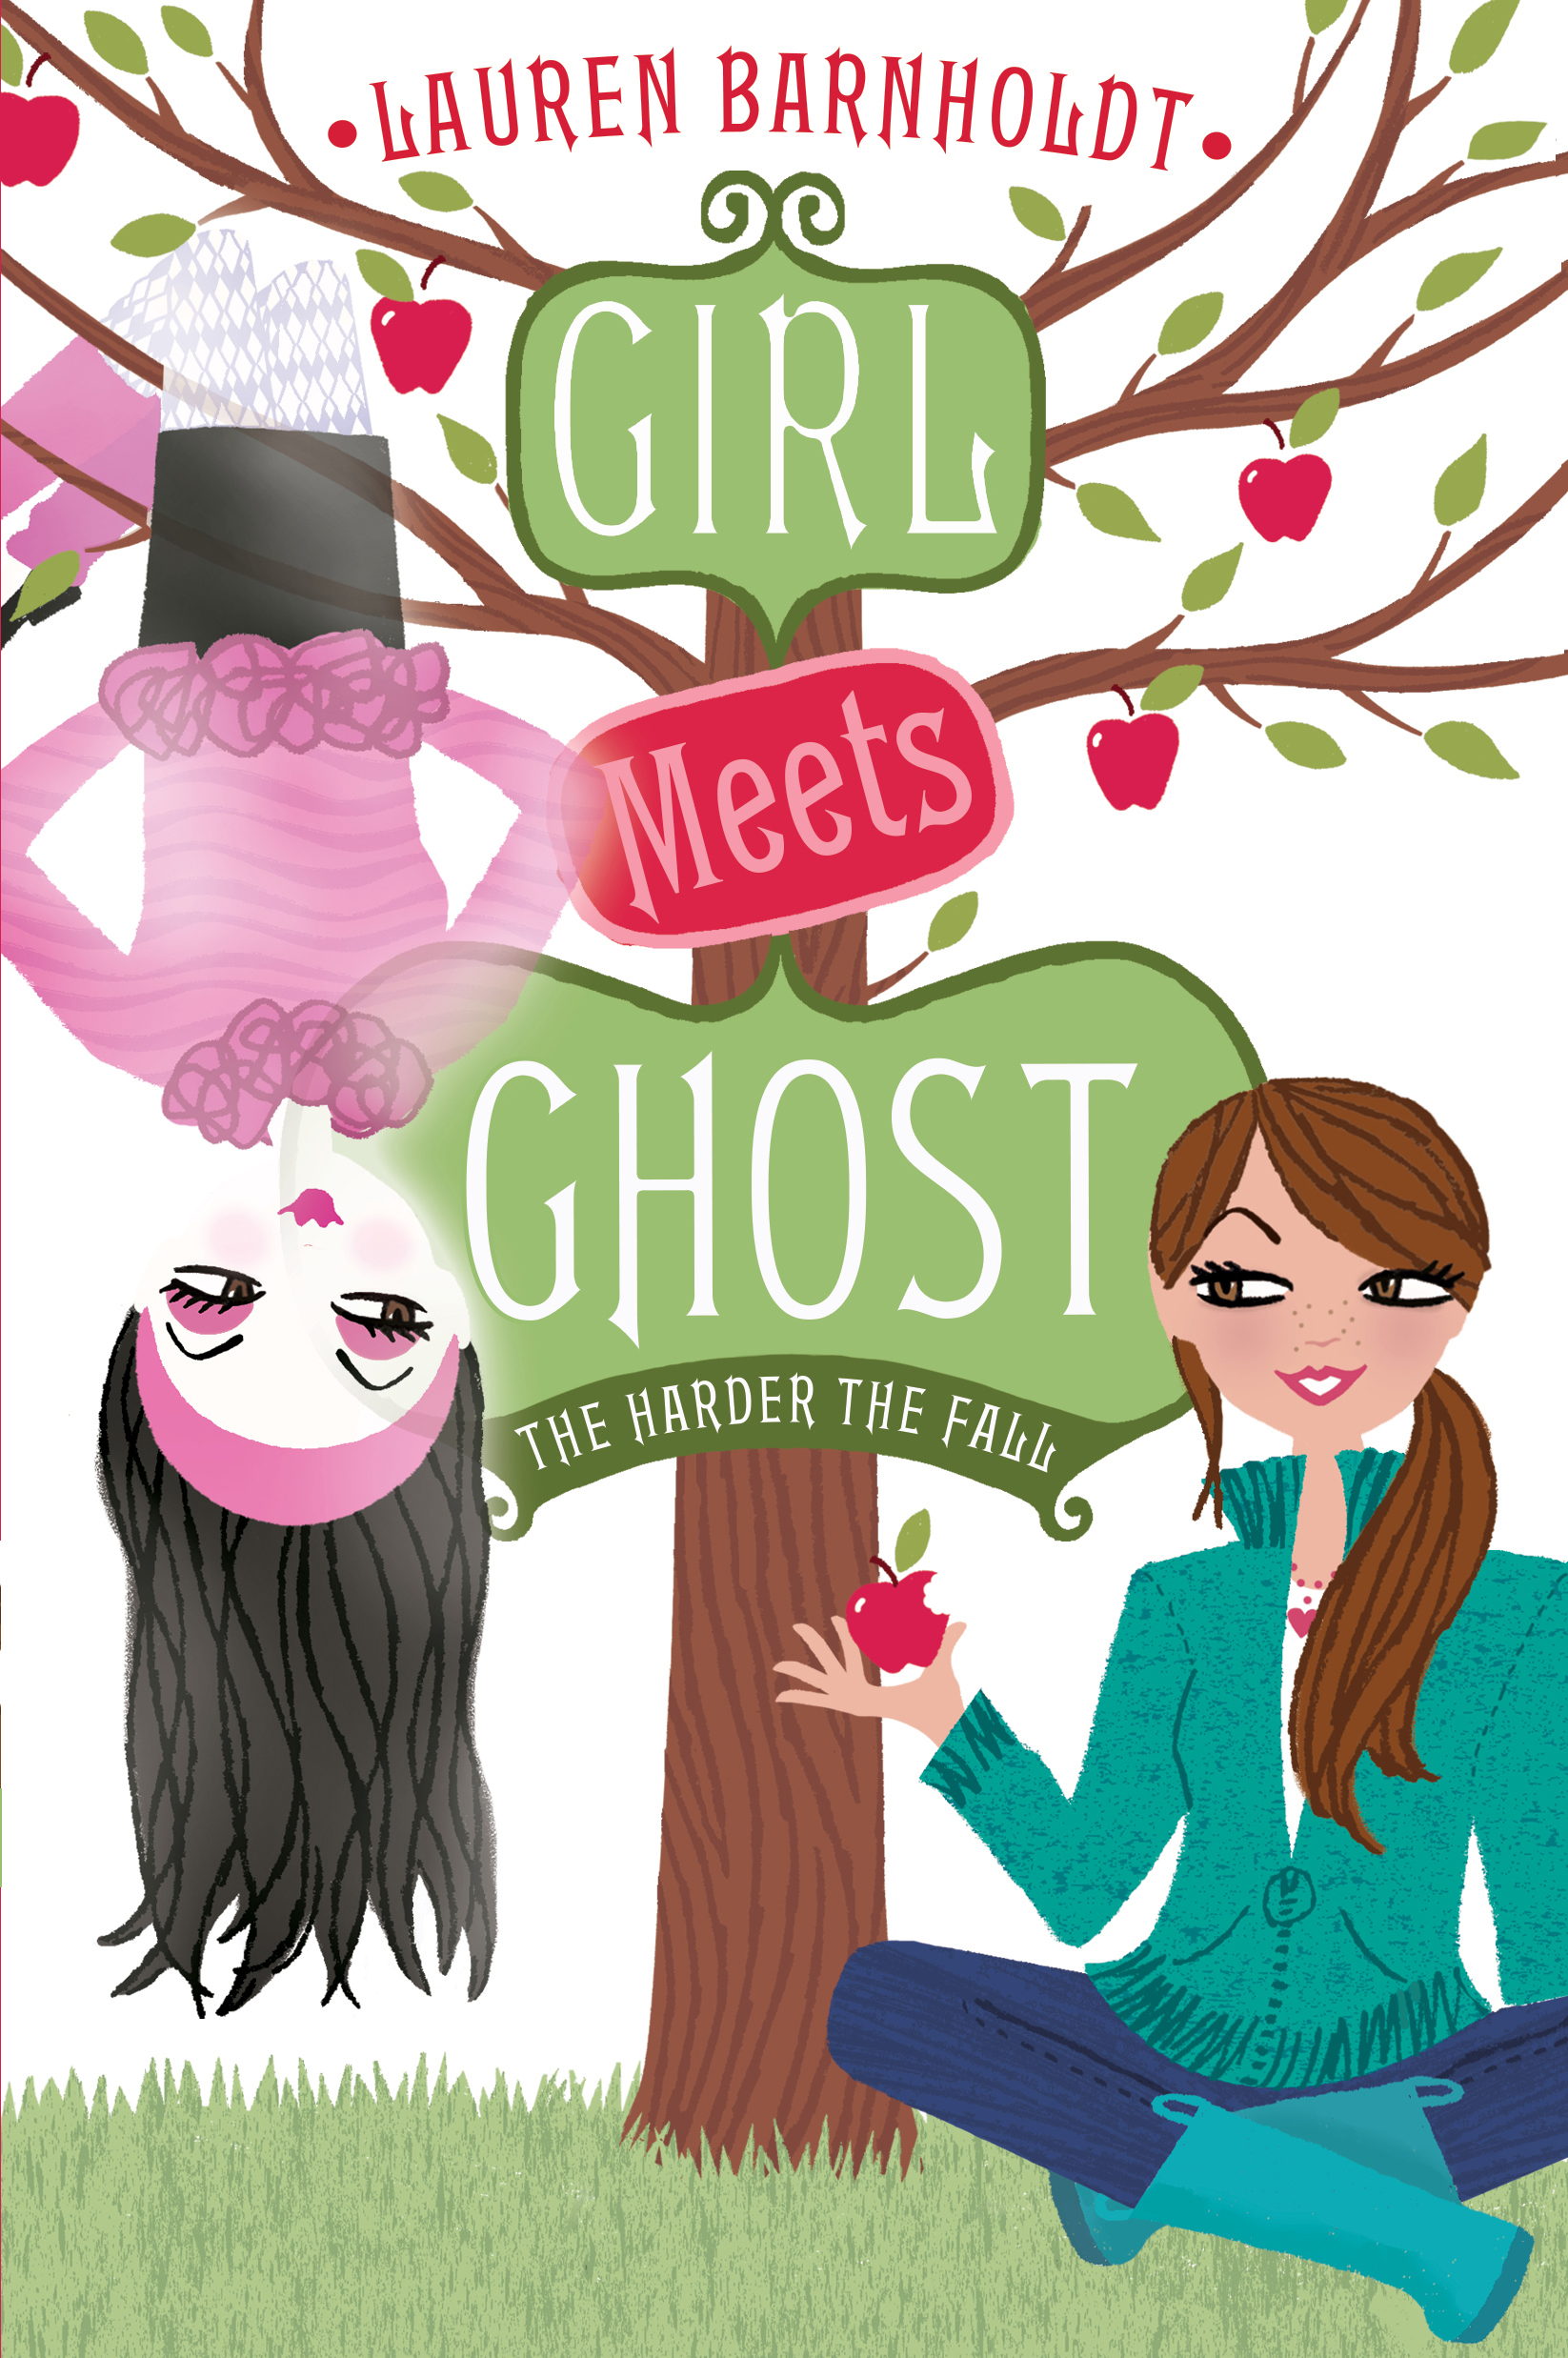 lauren barnholdt girl meets ghost series Find great deals for girl meets ghost: the harder the fall 2 by lauren barnholdt (2014, paperback) shop with confidence on ebay.